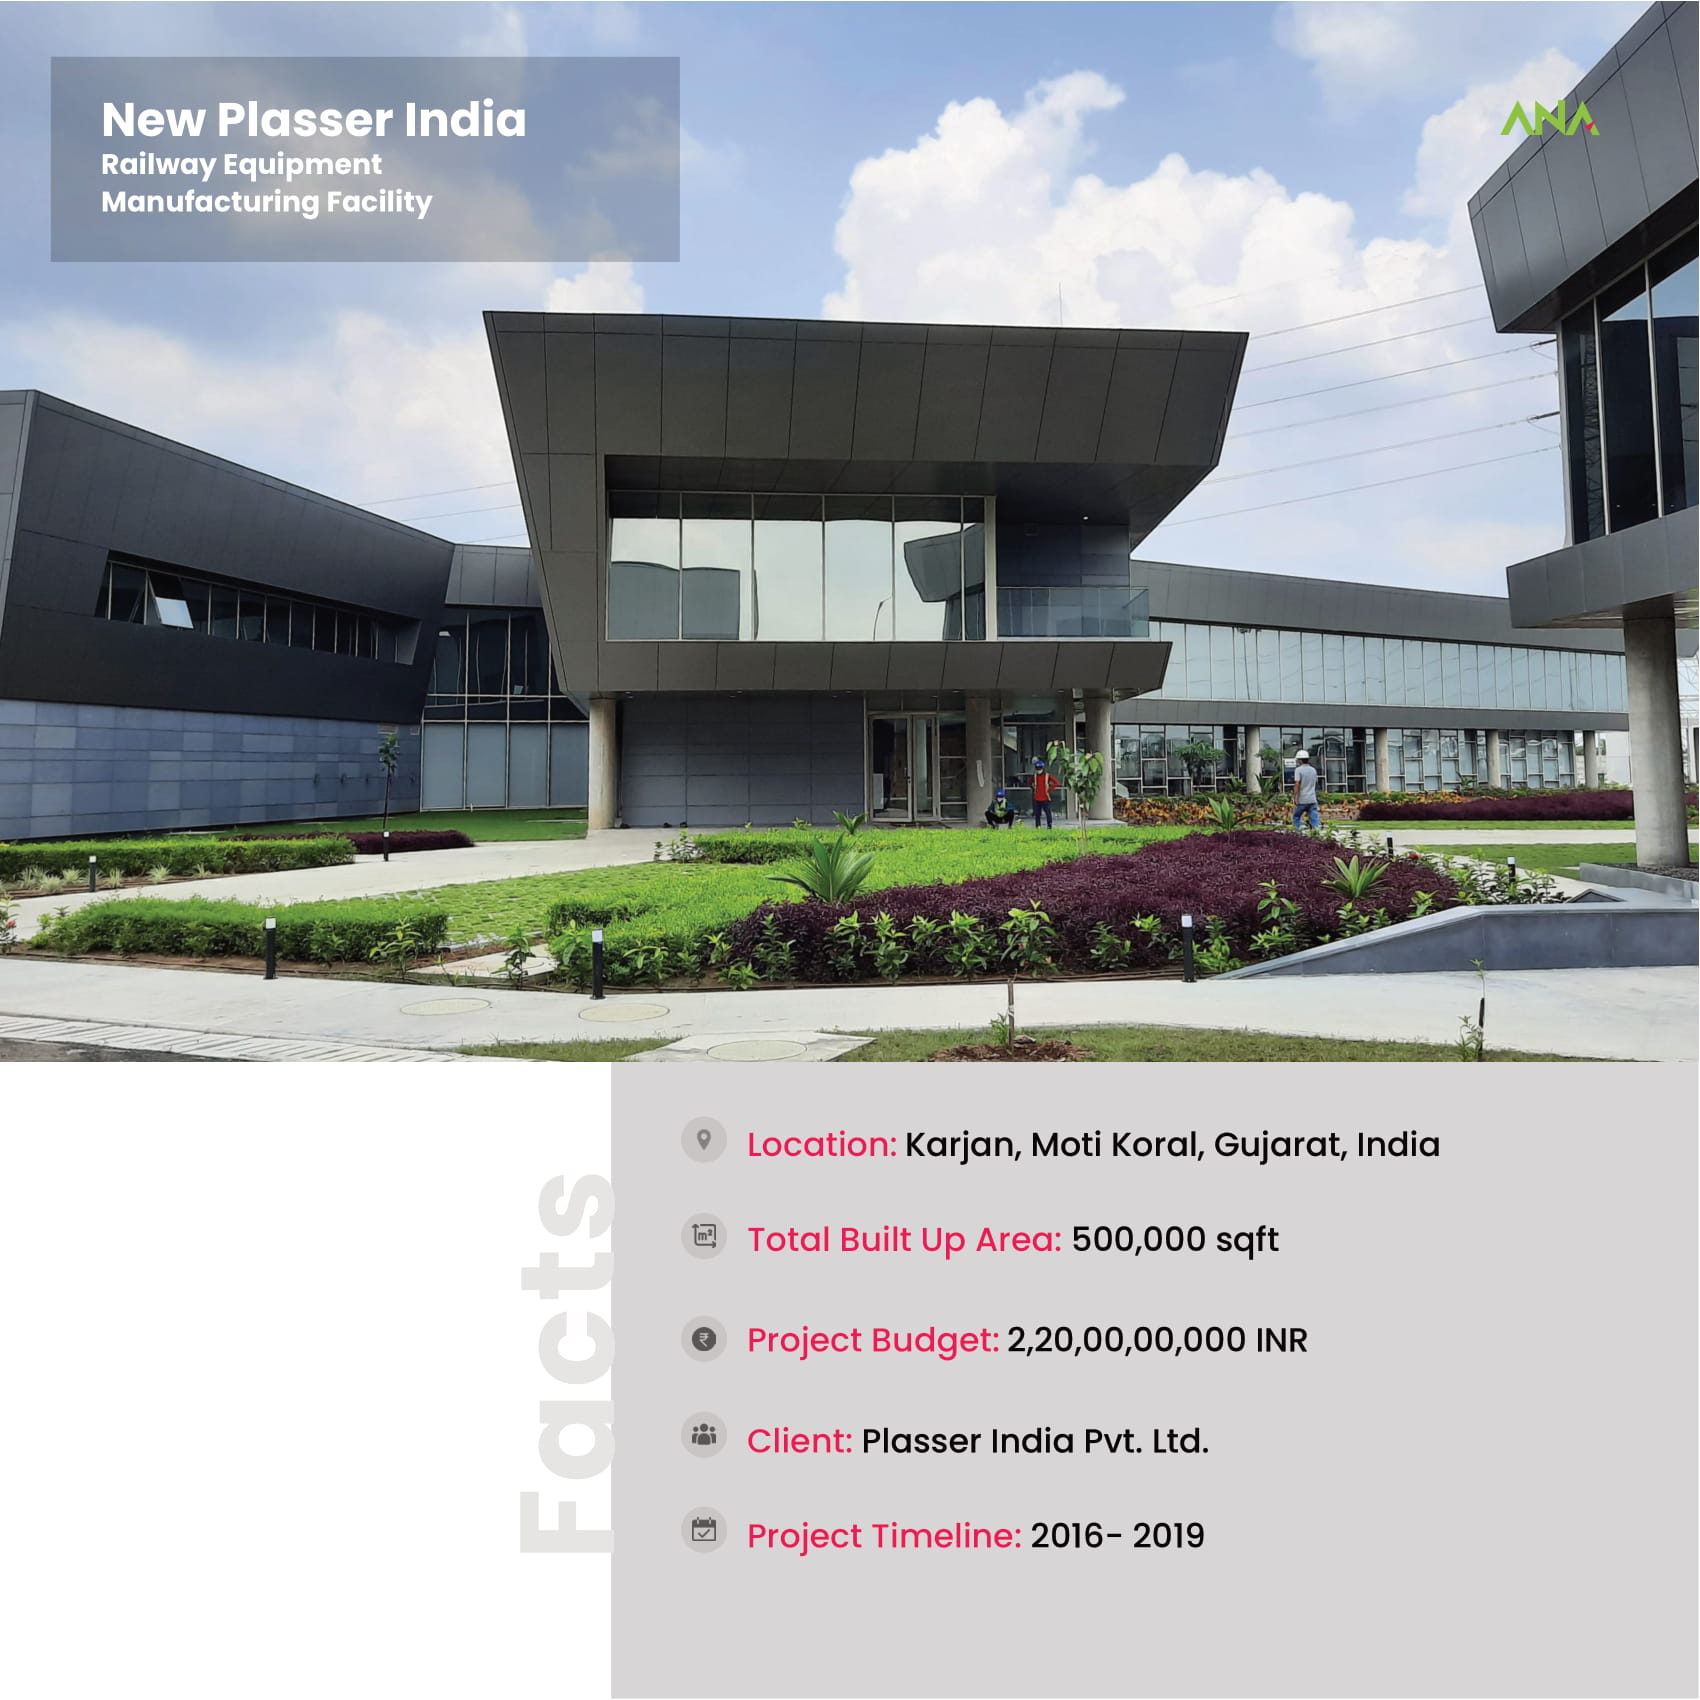 New Plasser India Manufacturing Facility